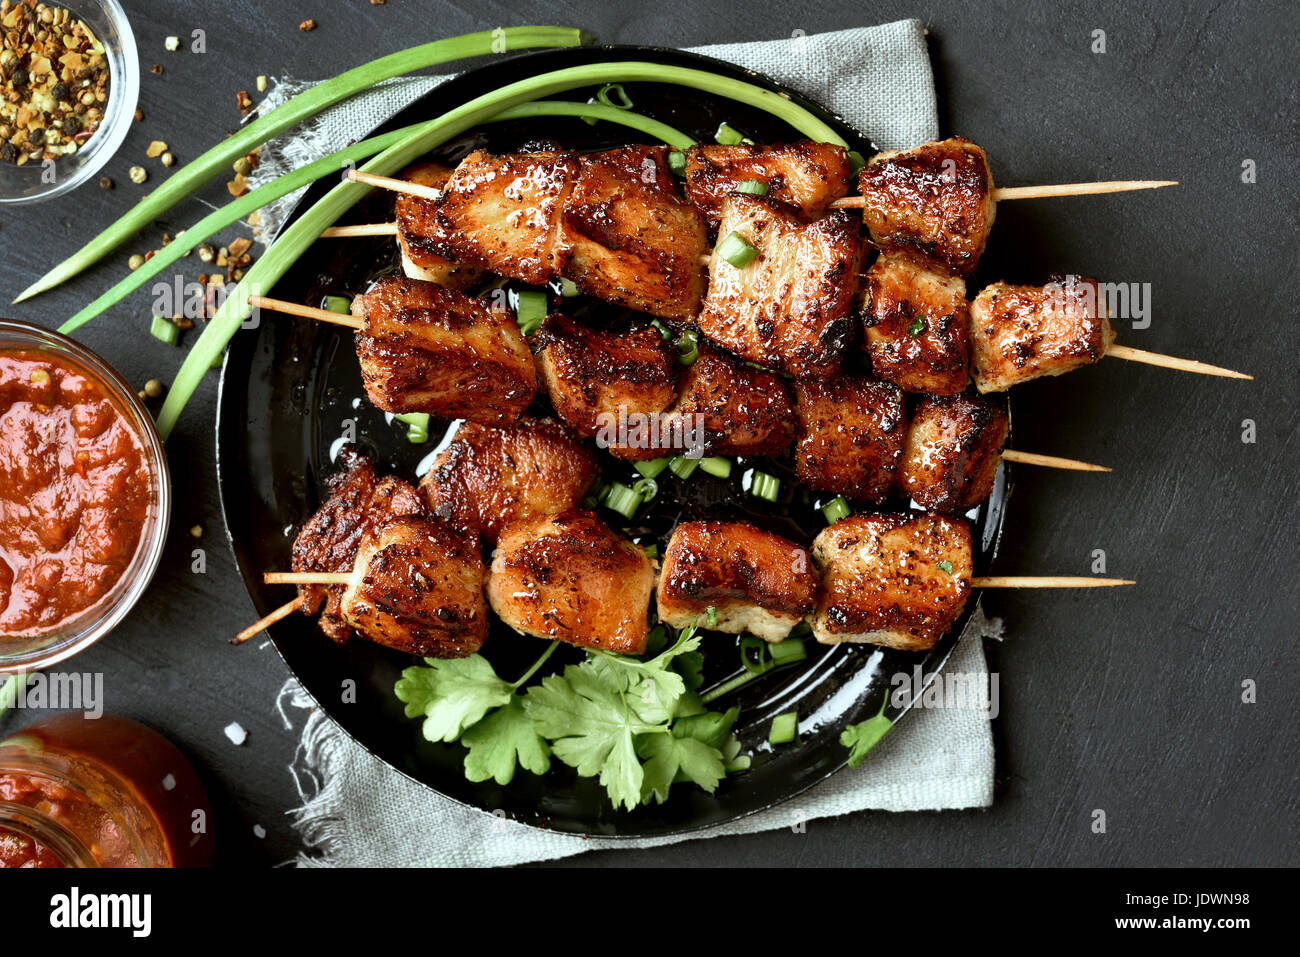 Pork kebabs, bbq meat on plate, top view - Stock Image